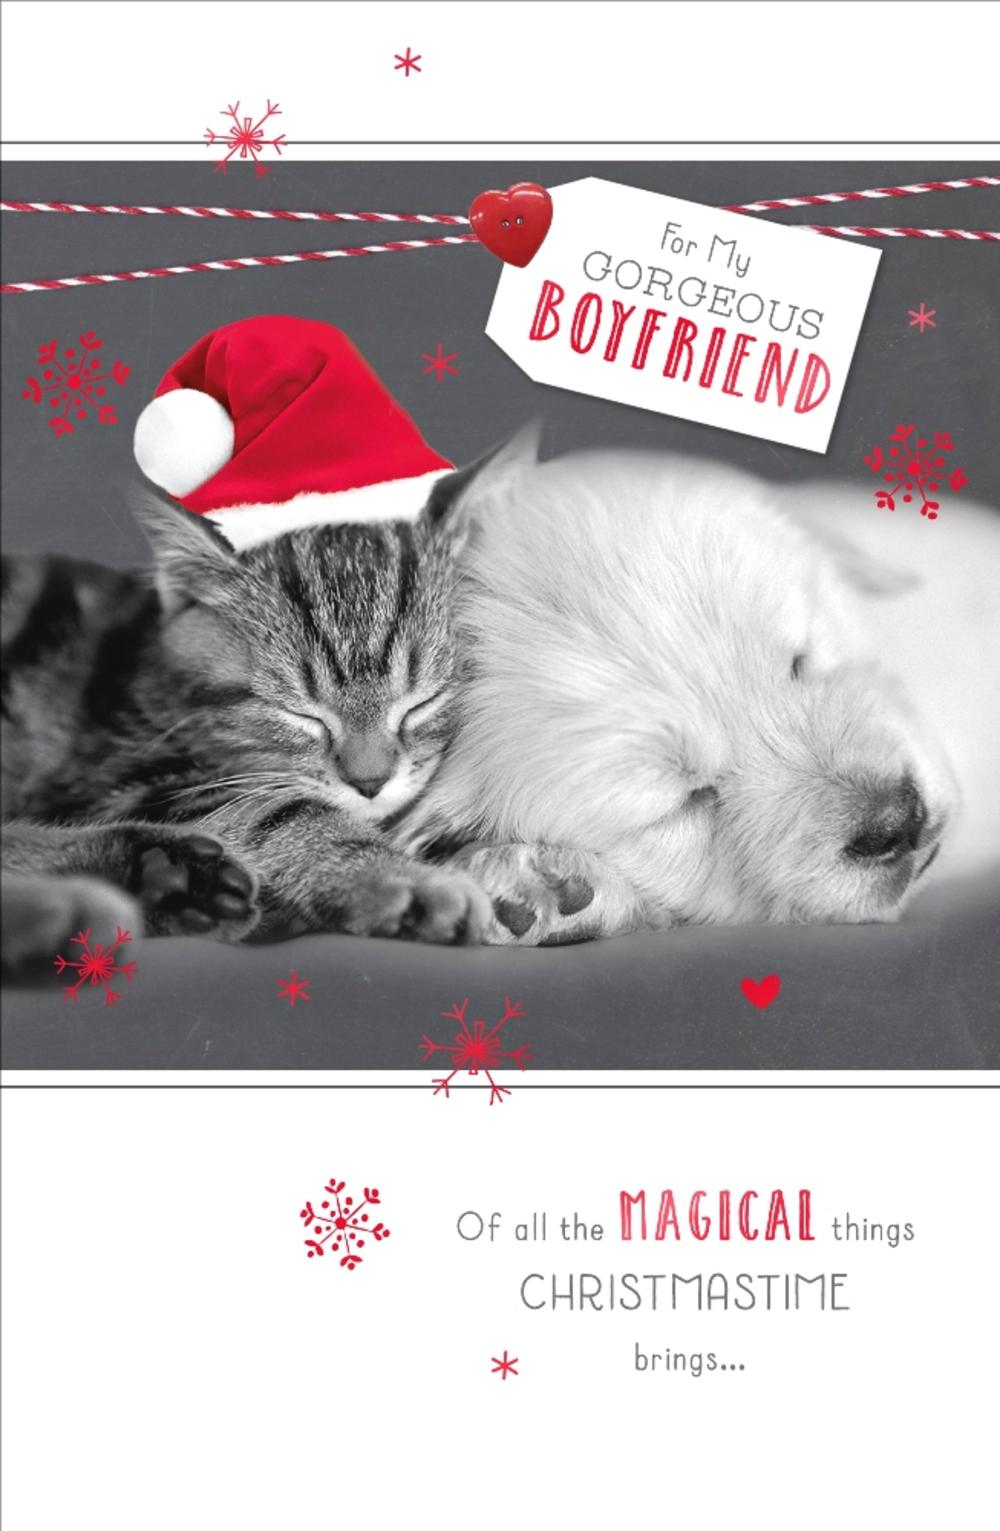 Gorgeous Boyfriend Talk To The Paws Christmas Greeting Card